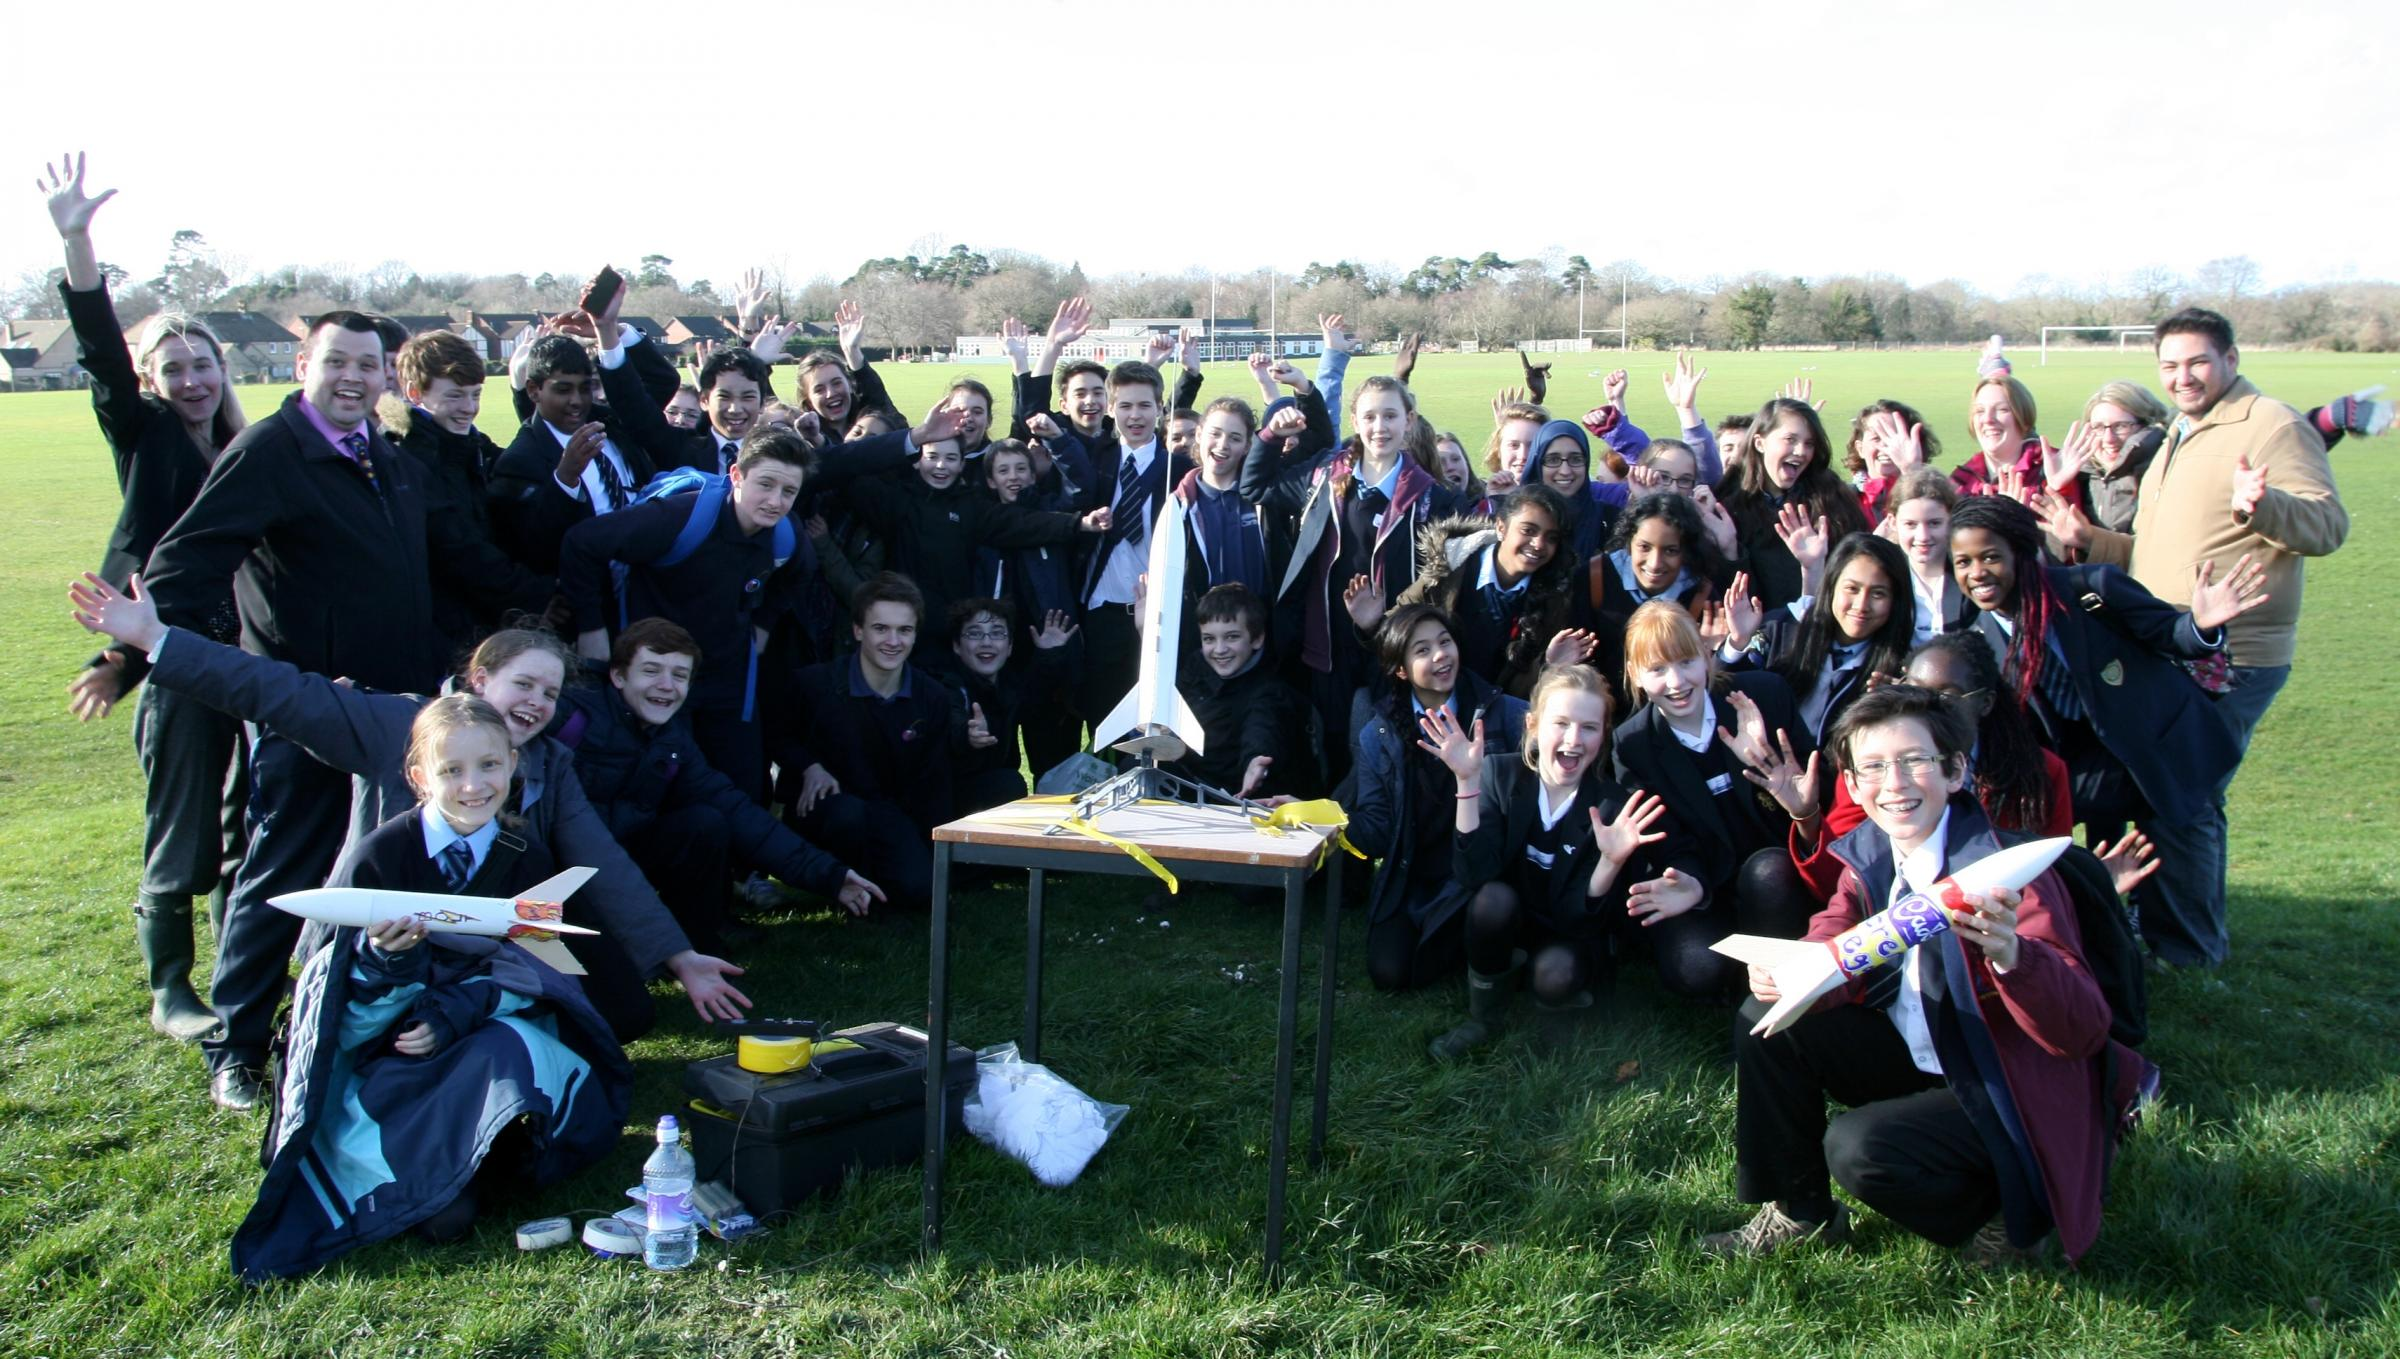 Rockets blast off as part of physics event at Sarisbury school